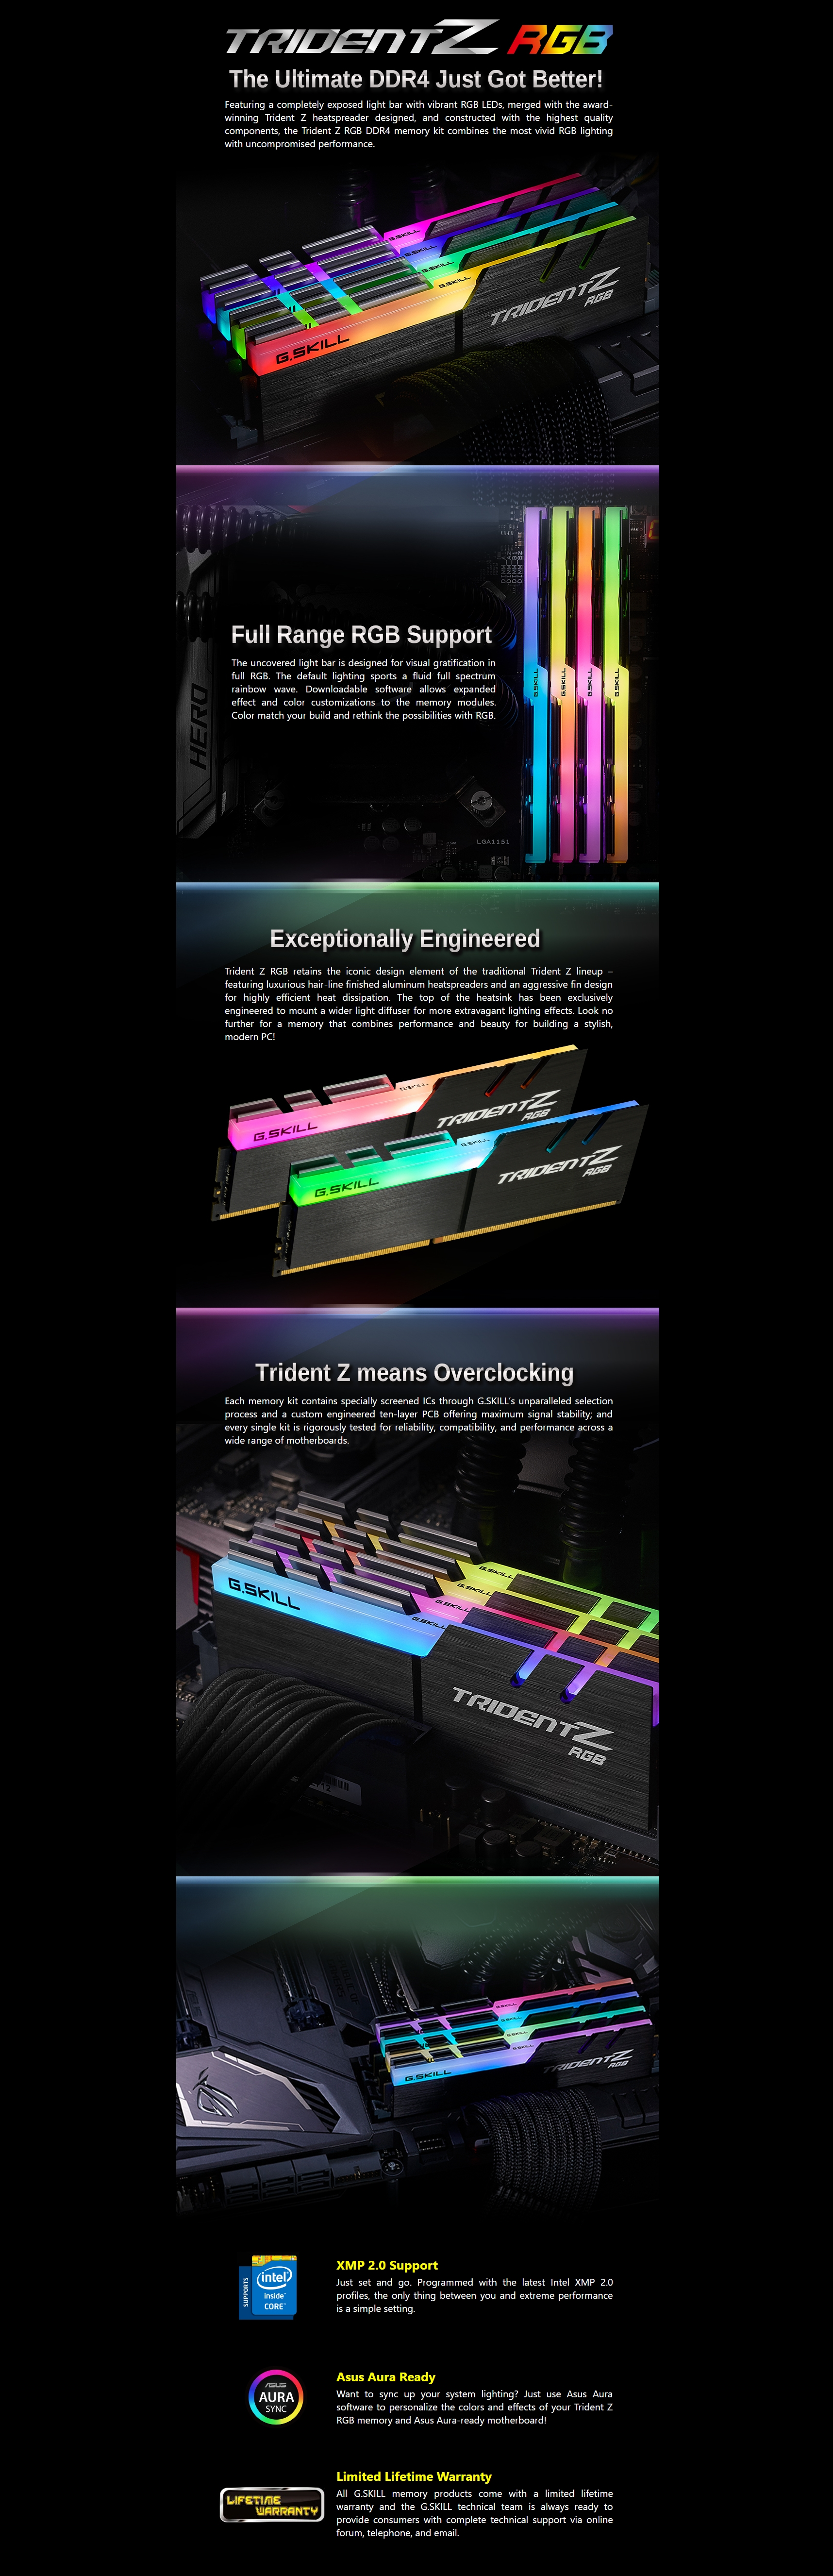 A large marketing image providing additional information about the product G.Skill 32GB Kit (4x8GB) DDR4 Trident Z RGB 3600MHz C17 - Additional alt info not provided